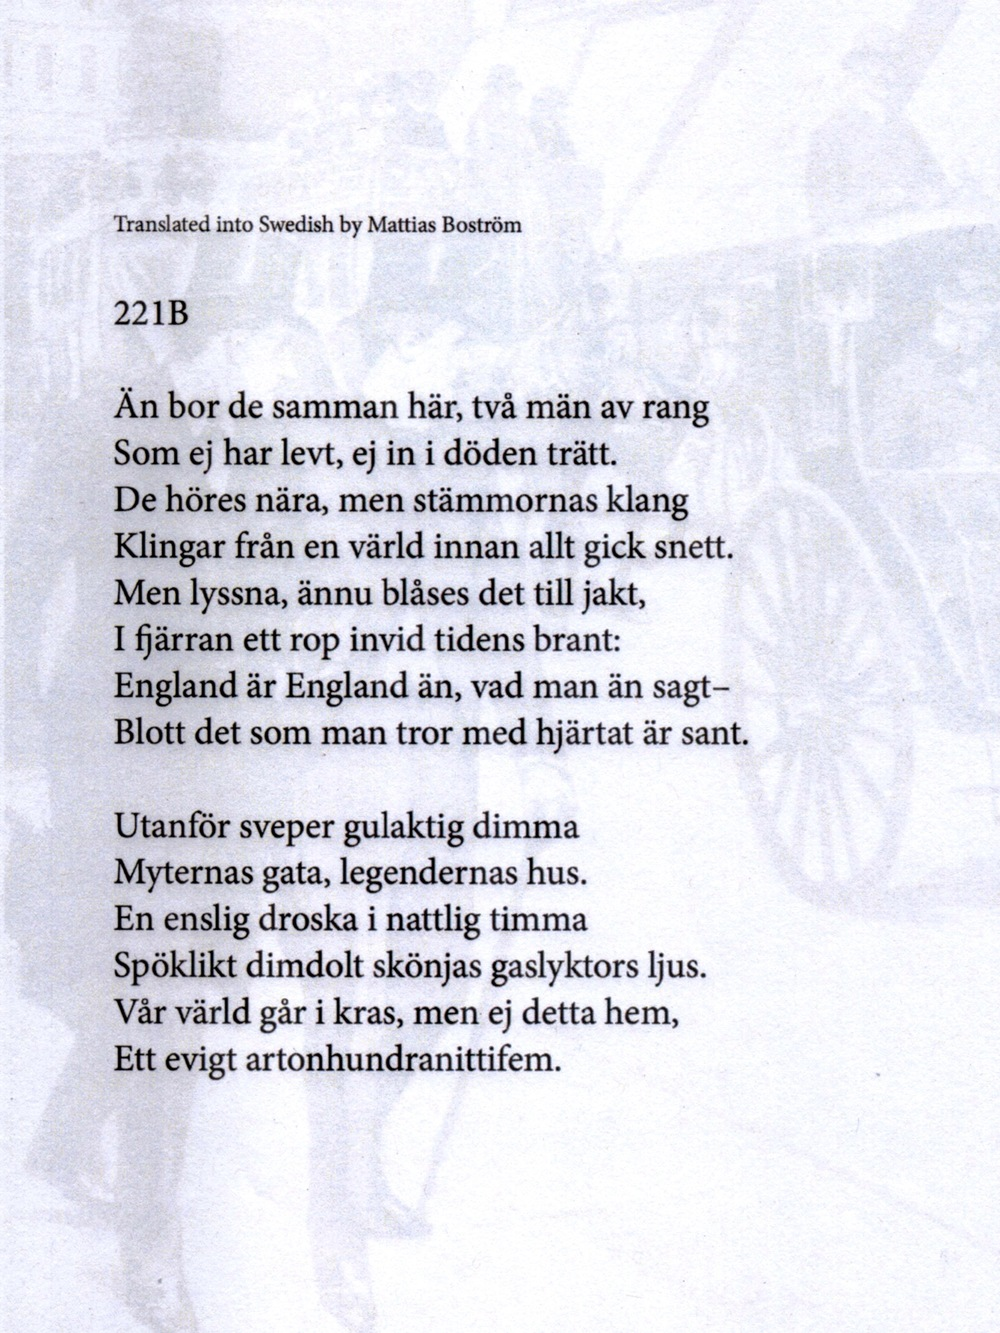 A Swedish translation by Mattias Bostrom